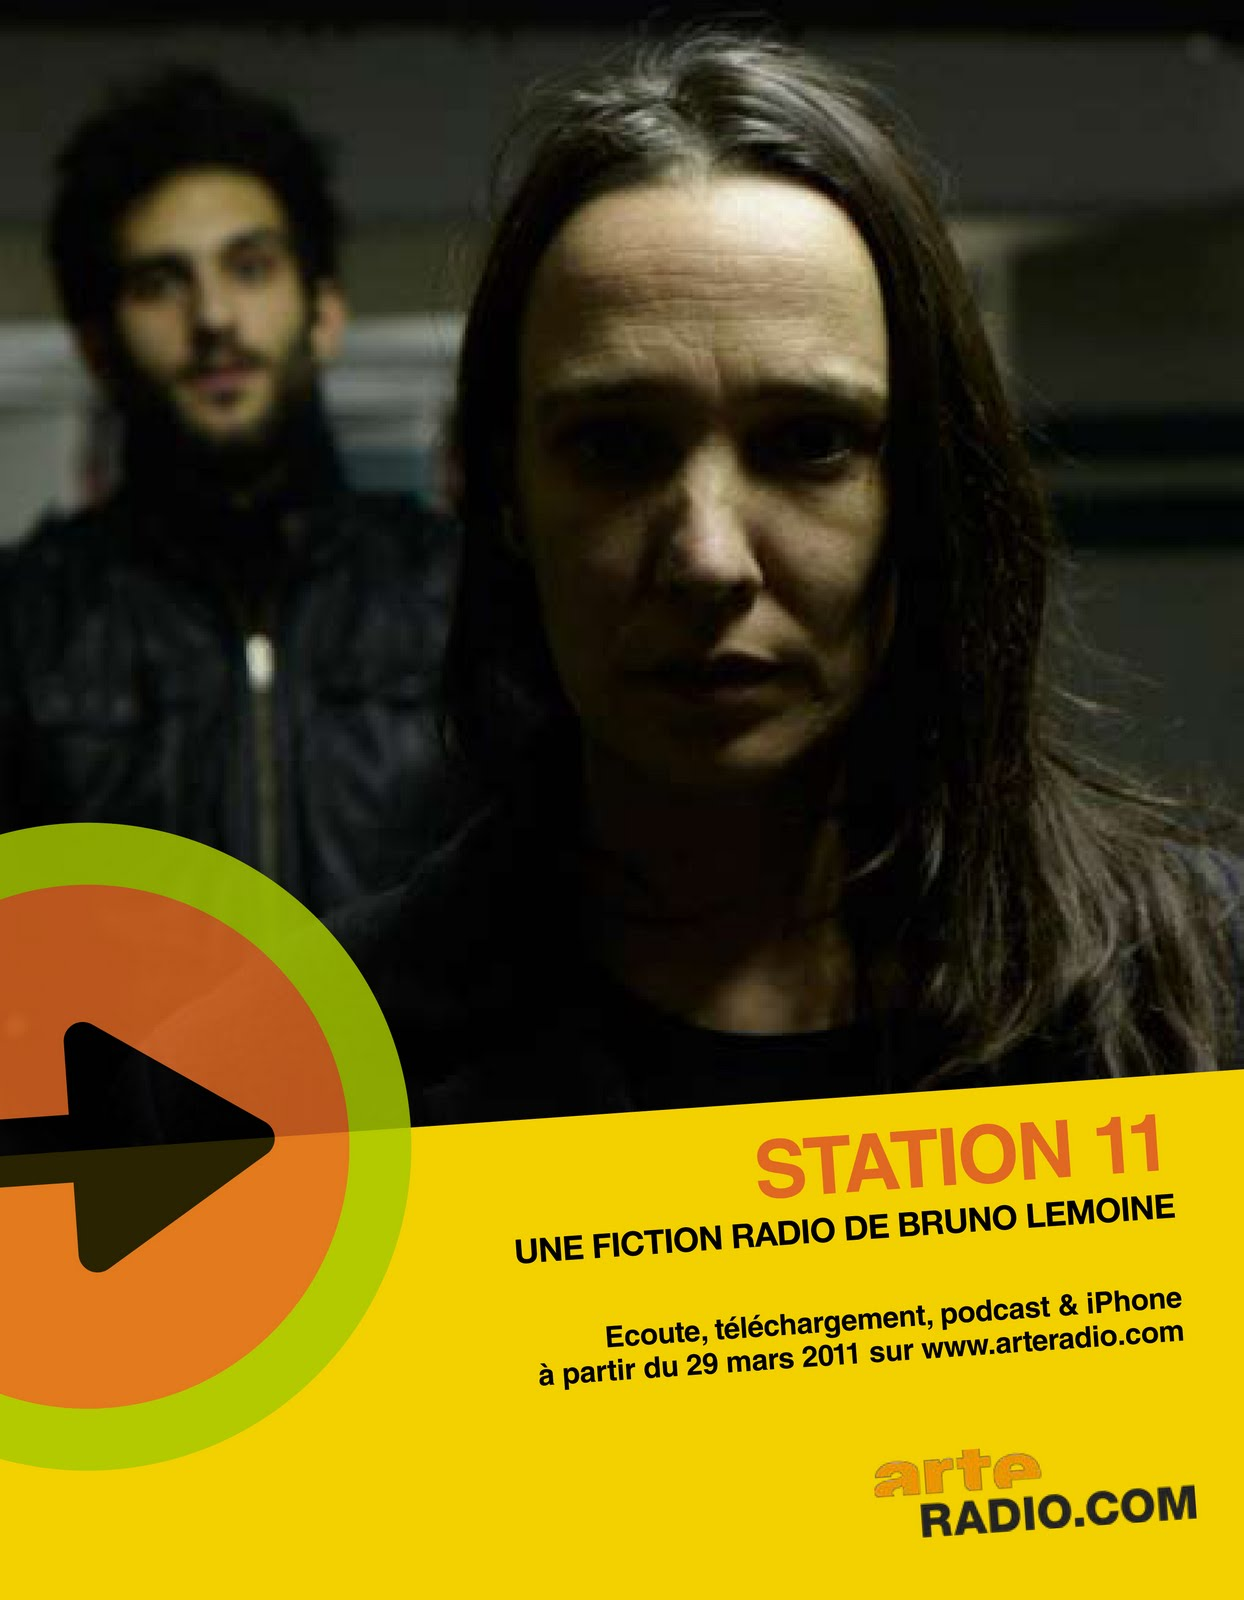 Arte Radio Podcast Anton Mobin Station 11 Fiction Radio Sur Arte Radio